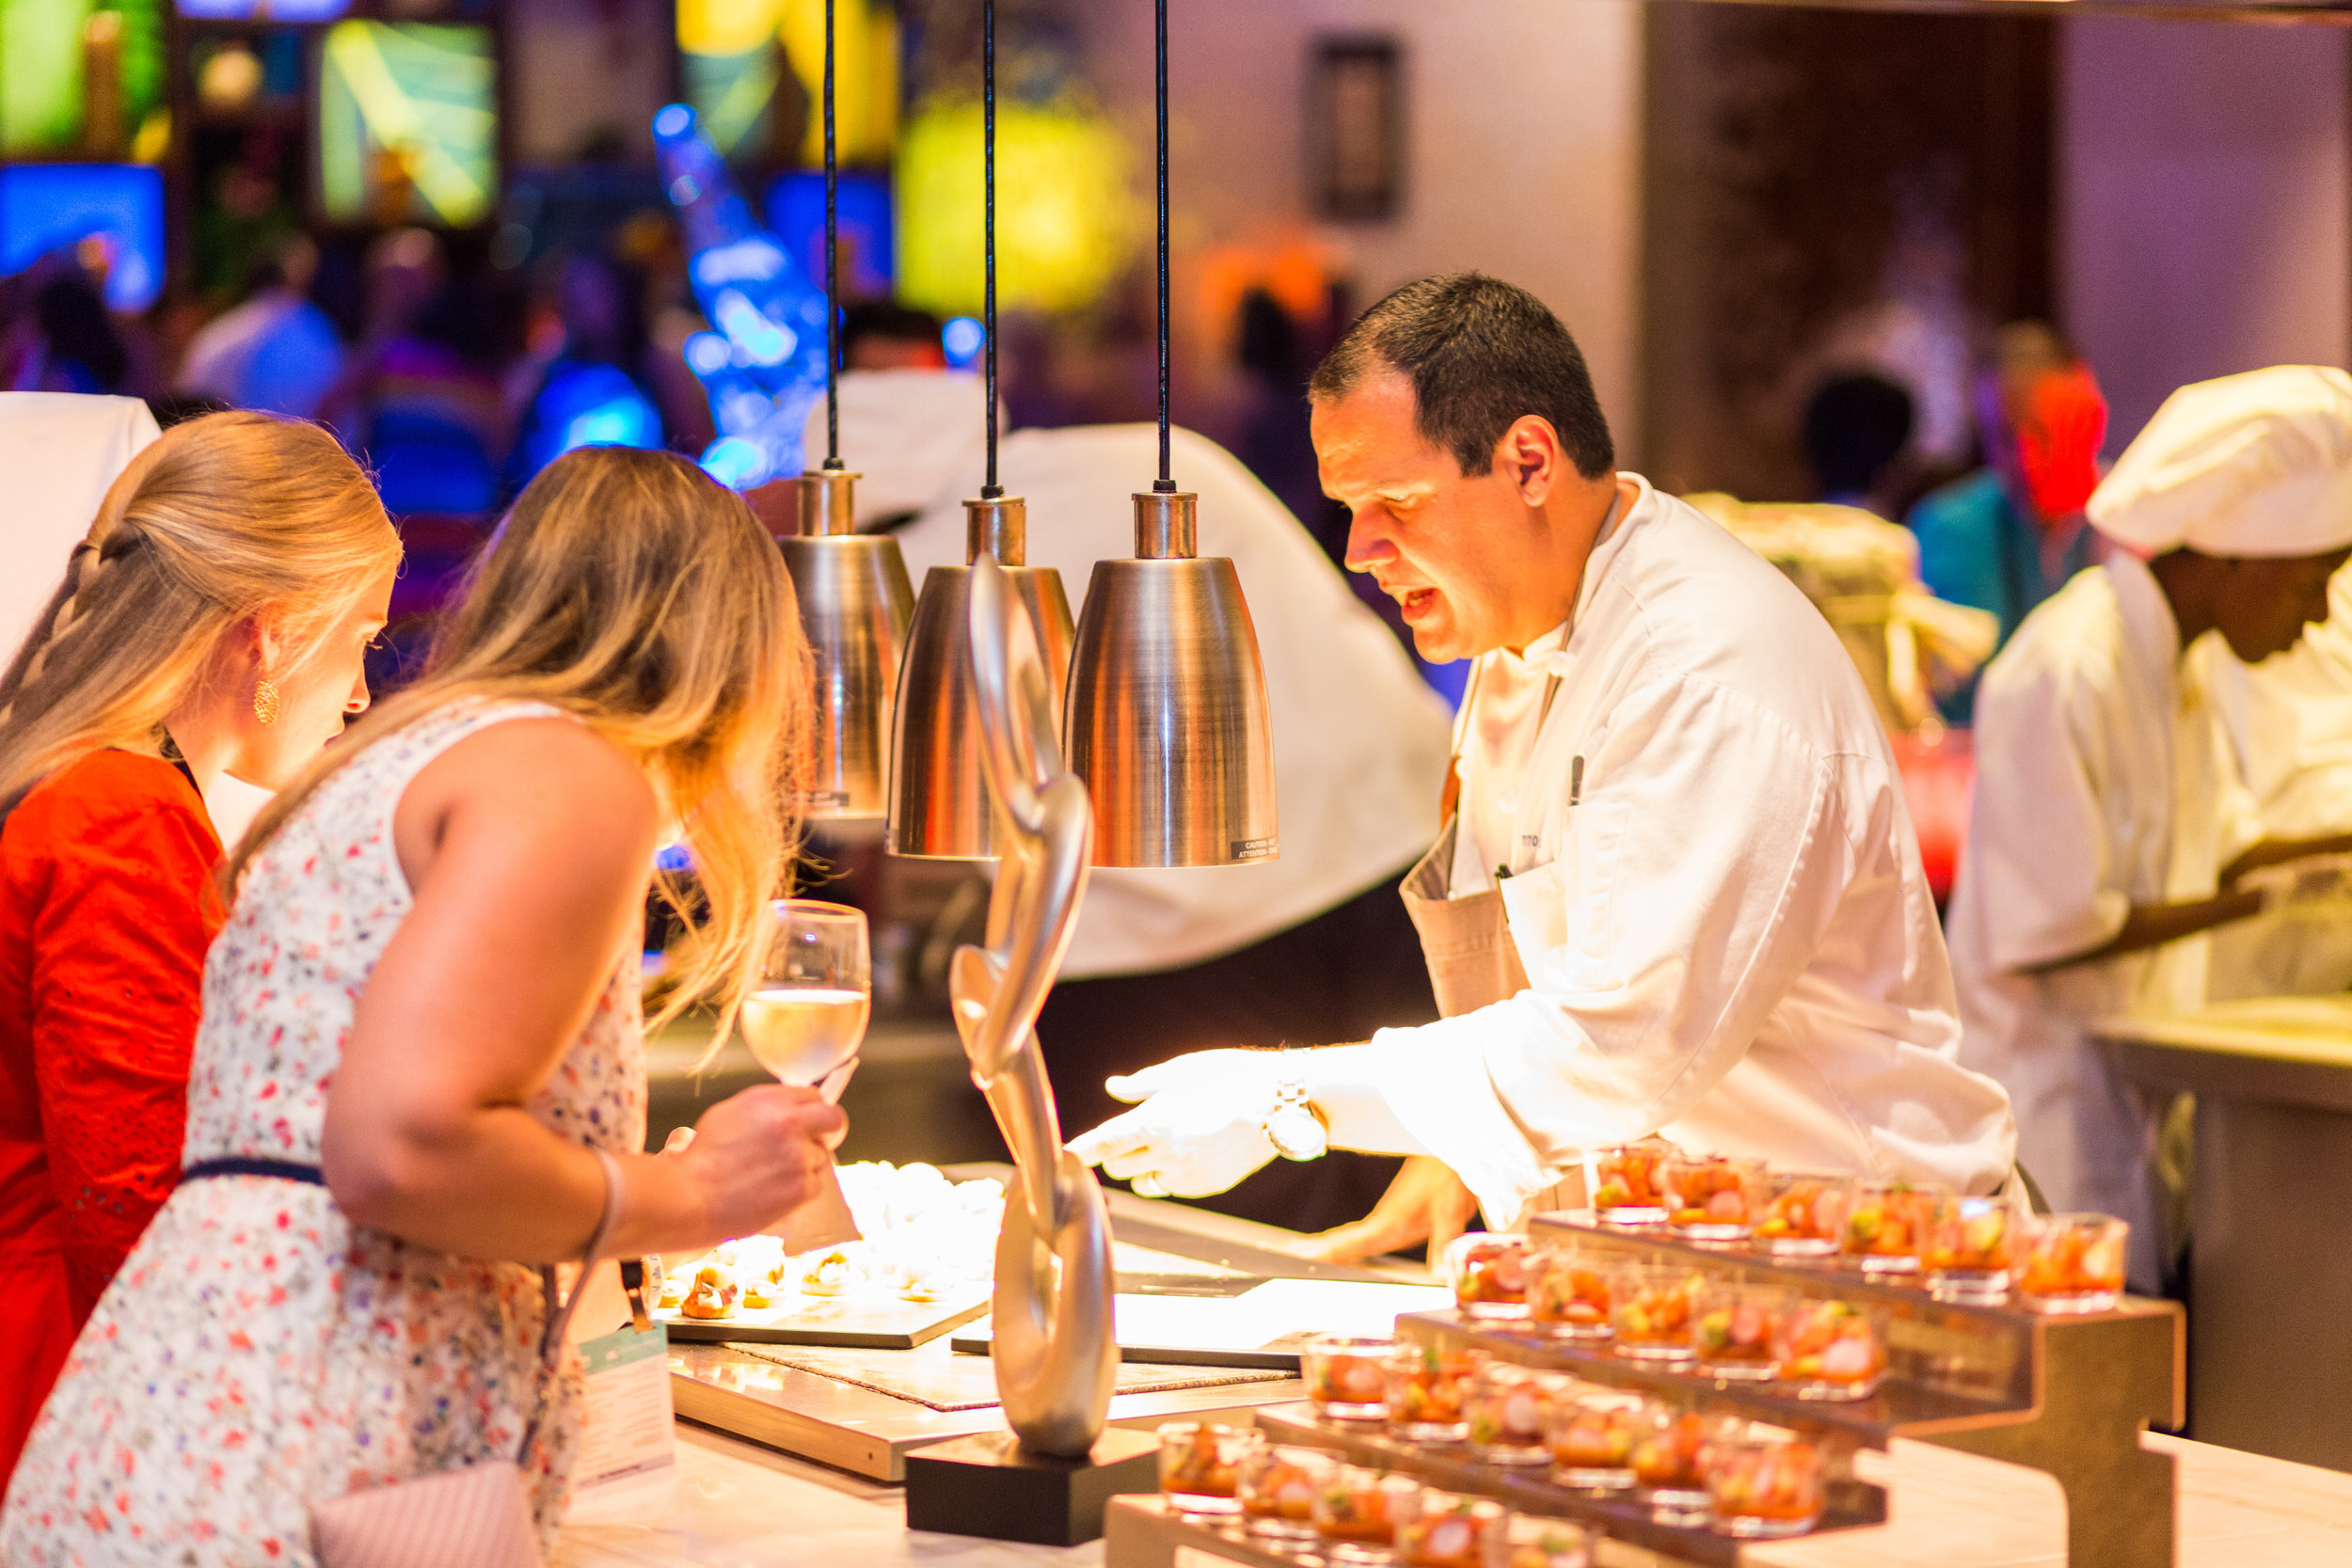 An Atlantis chef explaining his dish to inquisitive attendees.